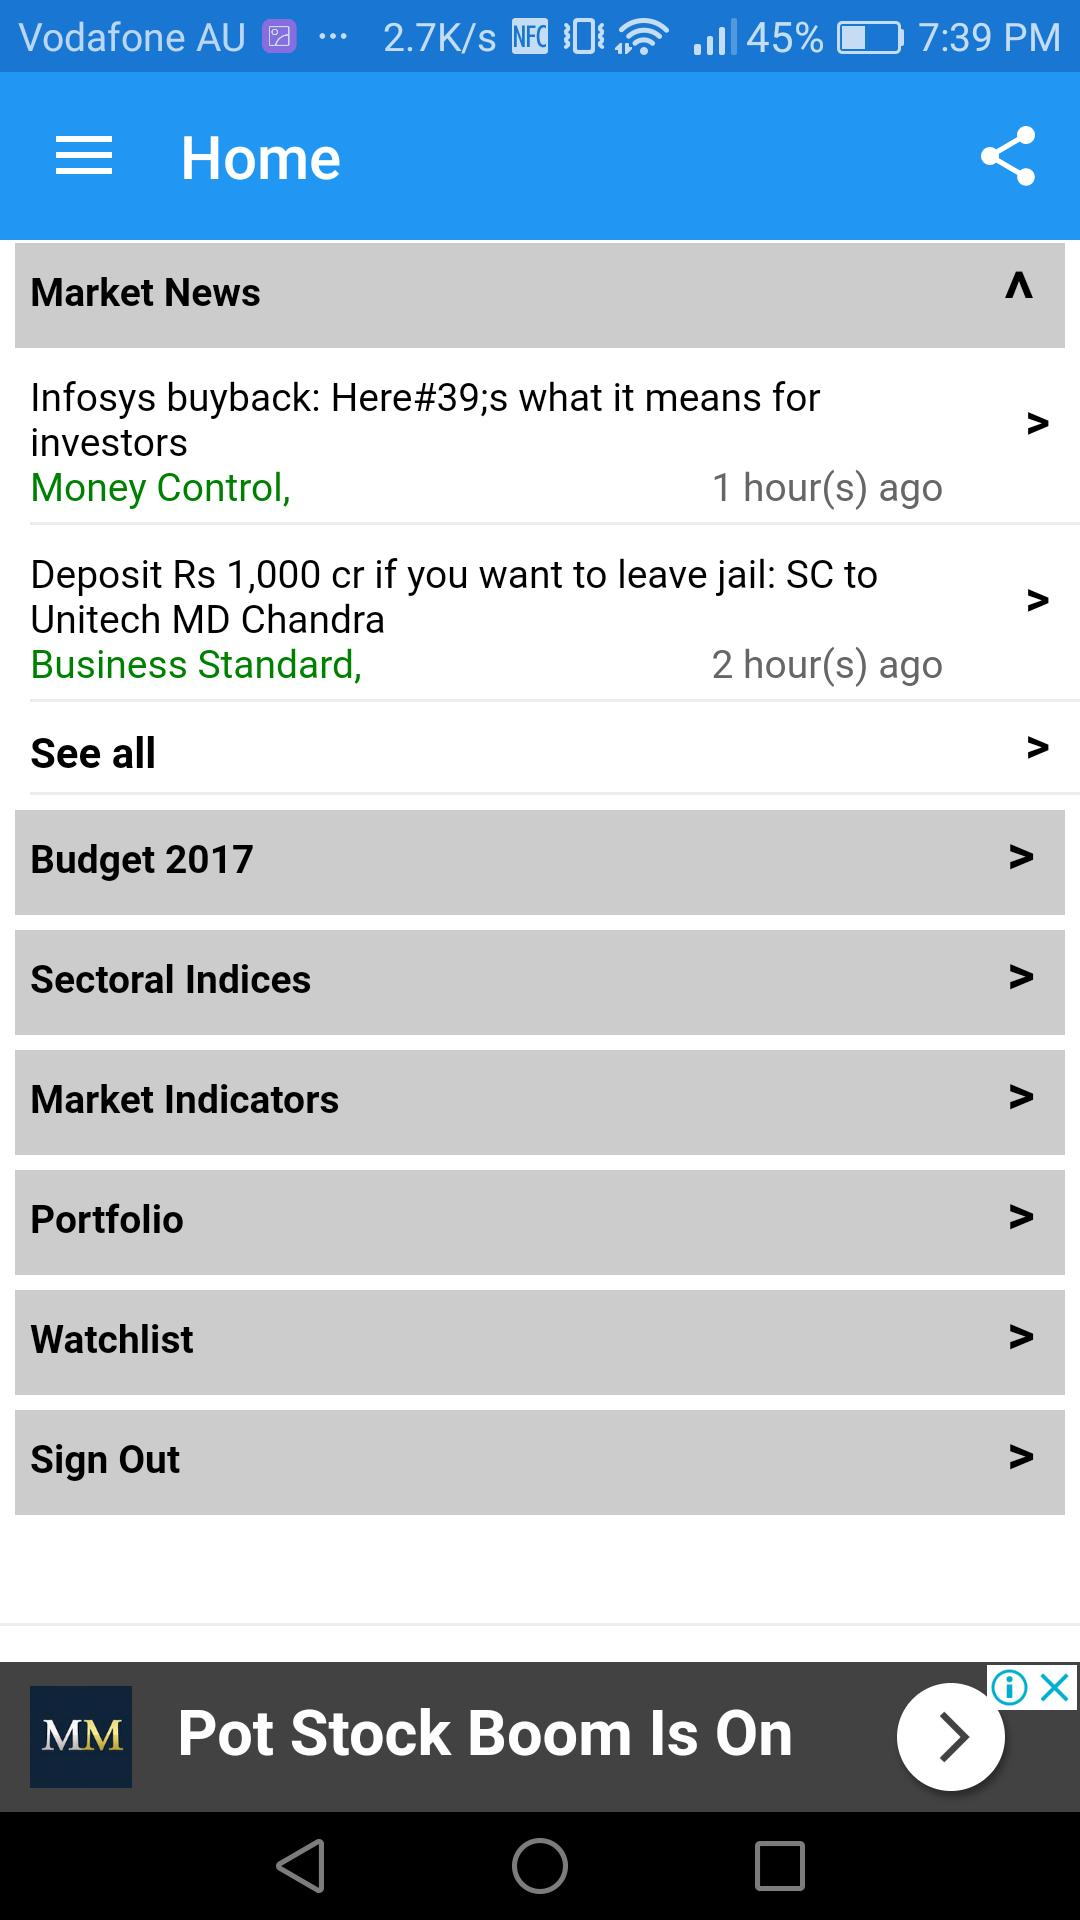 Live Stock Market -BSE NSE Market Viewer for Android - APK Download